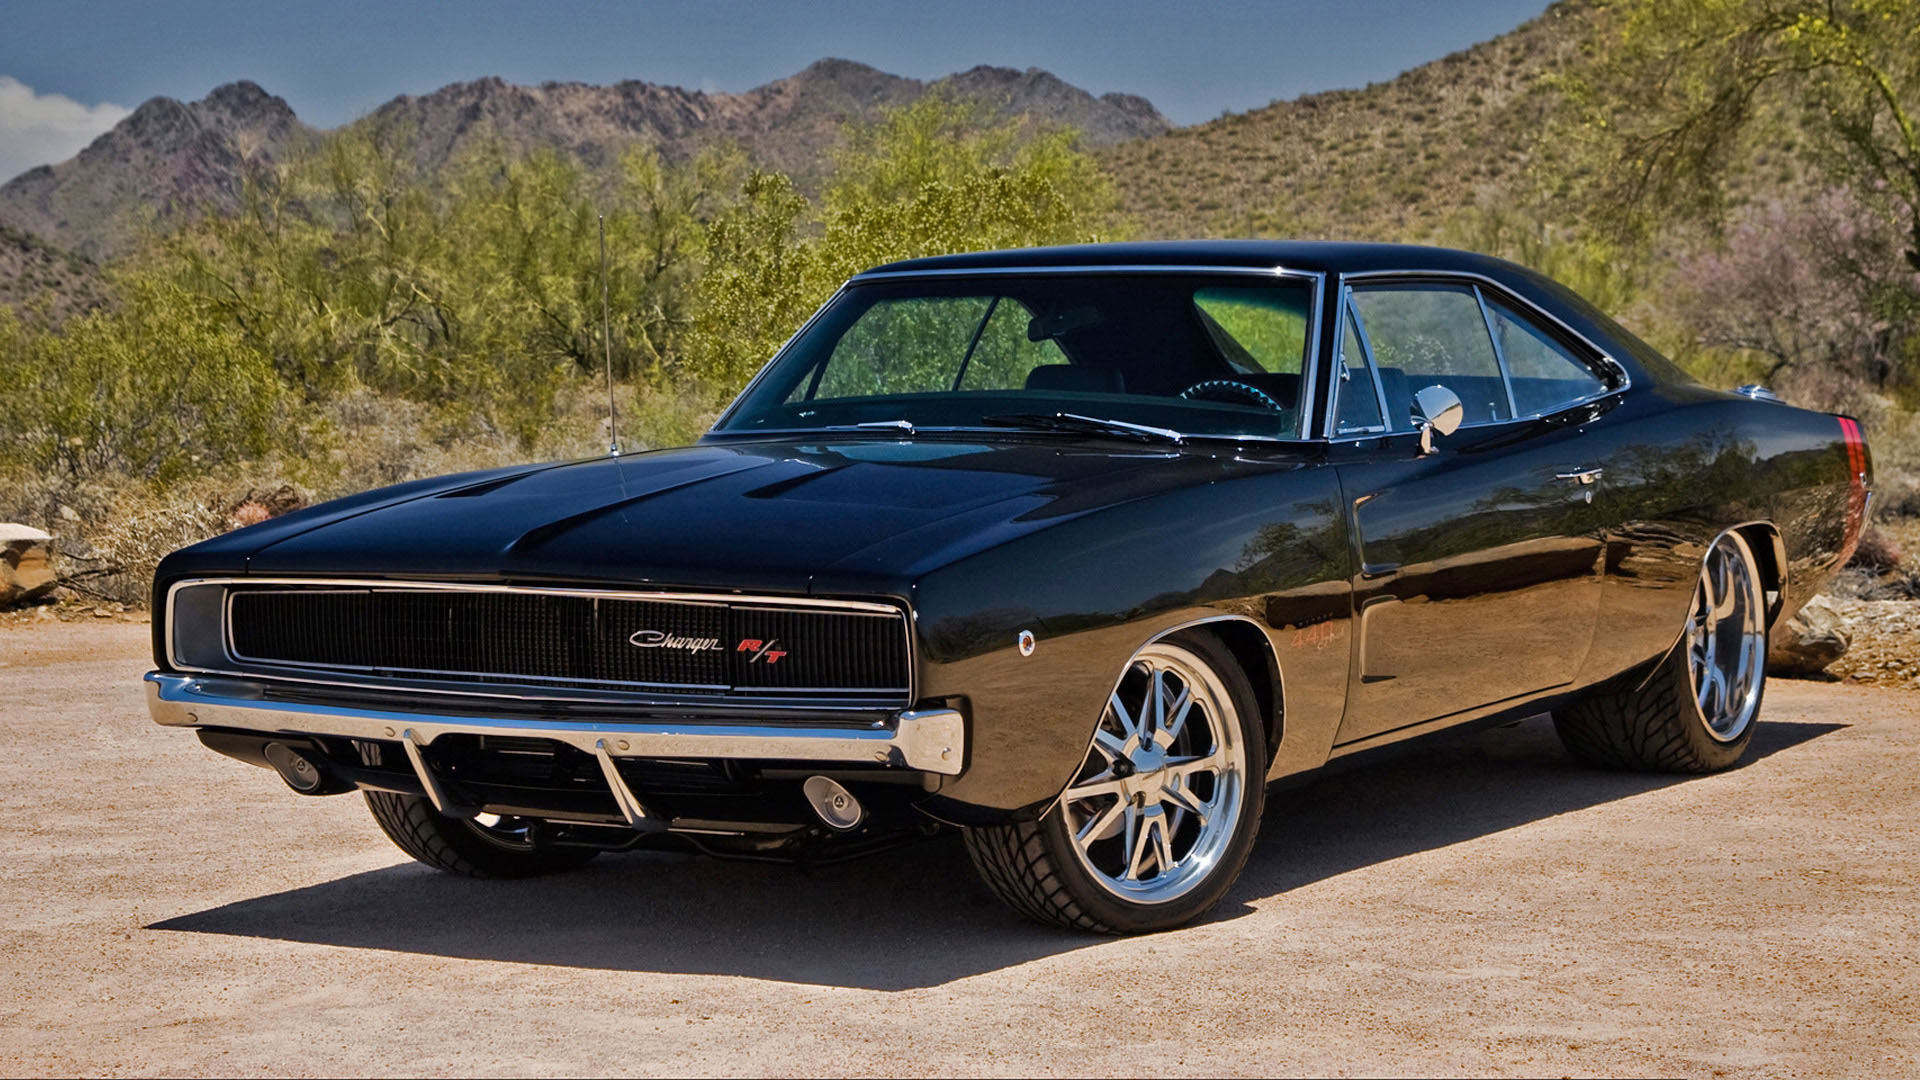 Dodge Charger R/T, can anyone think of a car as intimidating as this beast?